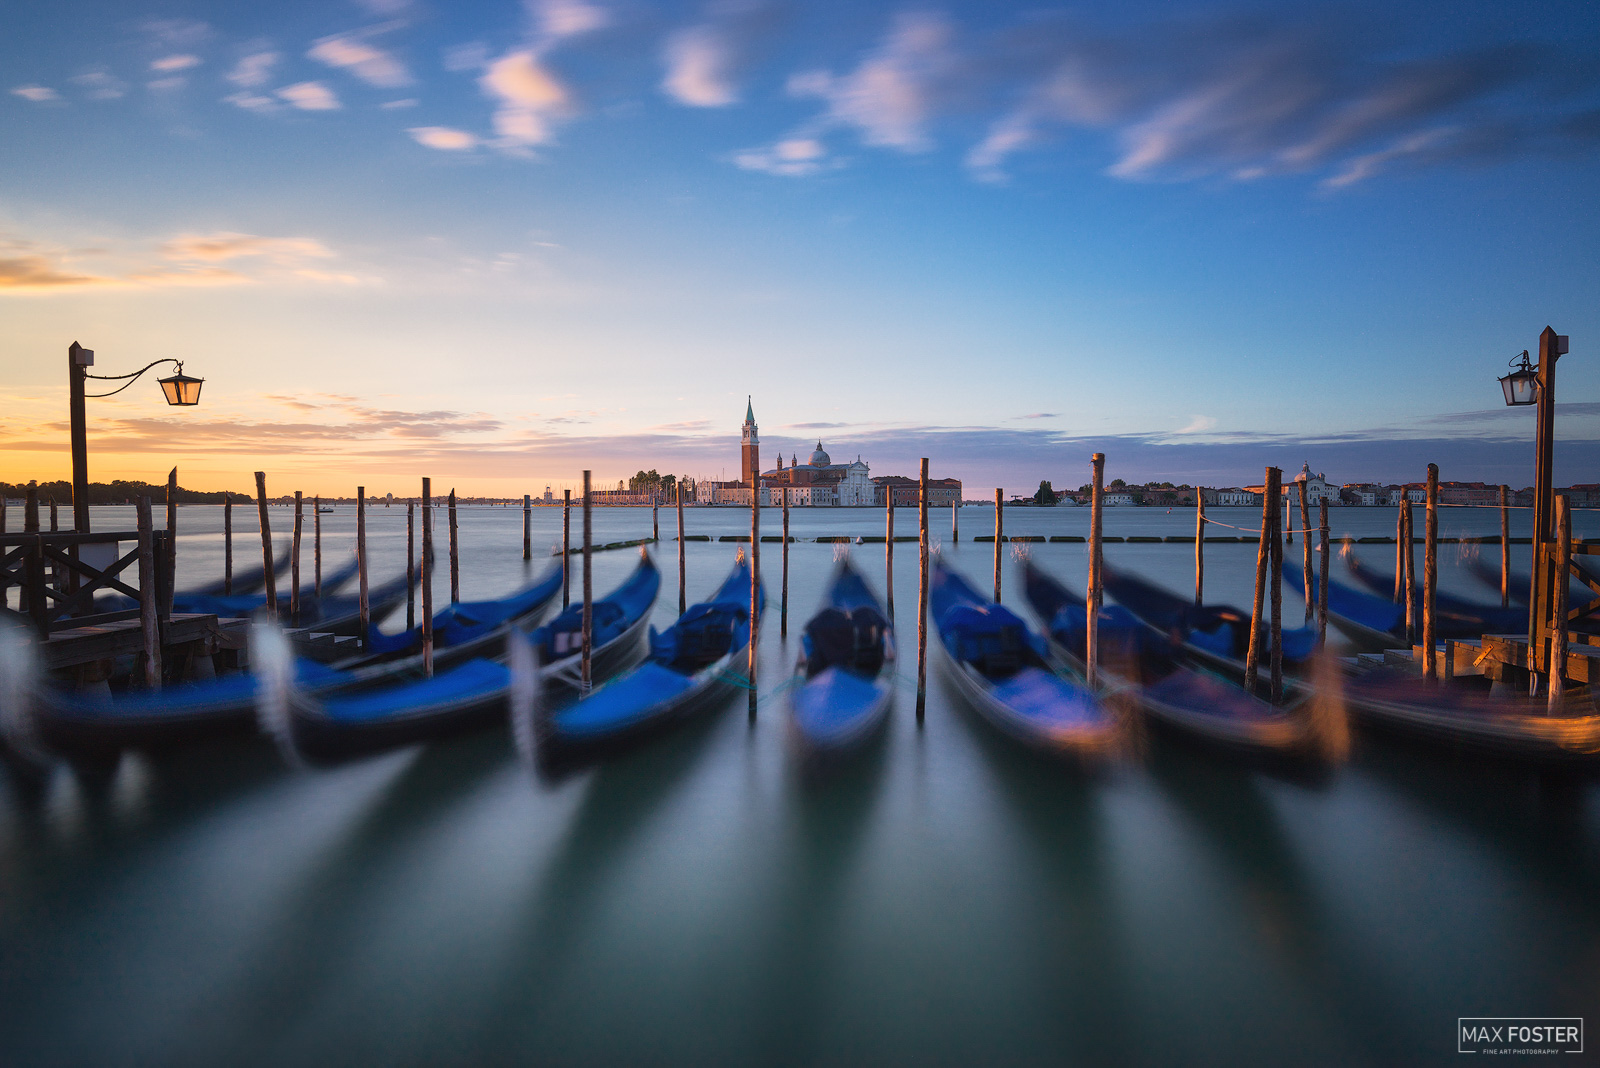 Venice, Italy, Gateway to Venice, Veneto, Islands, Venetian Lagoon, Venetian, Lagoon, Queen of the Adriatic, Adriatic, City of Water, Water, City of Masks, Masks, City of Bridges, Bridges, The Floatin, photo